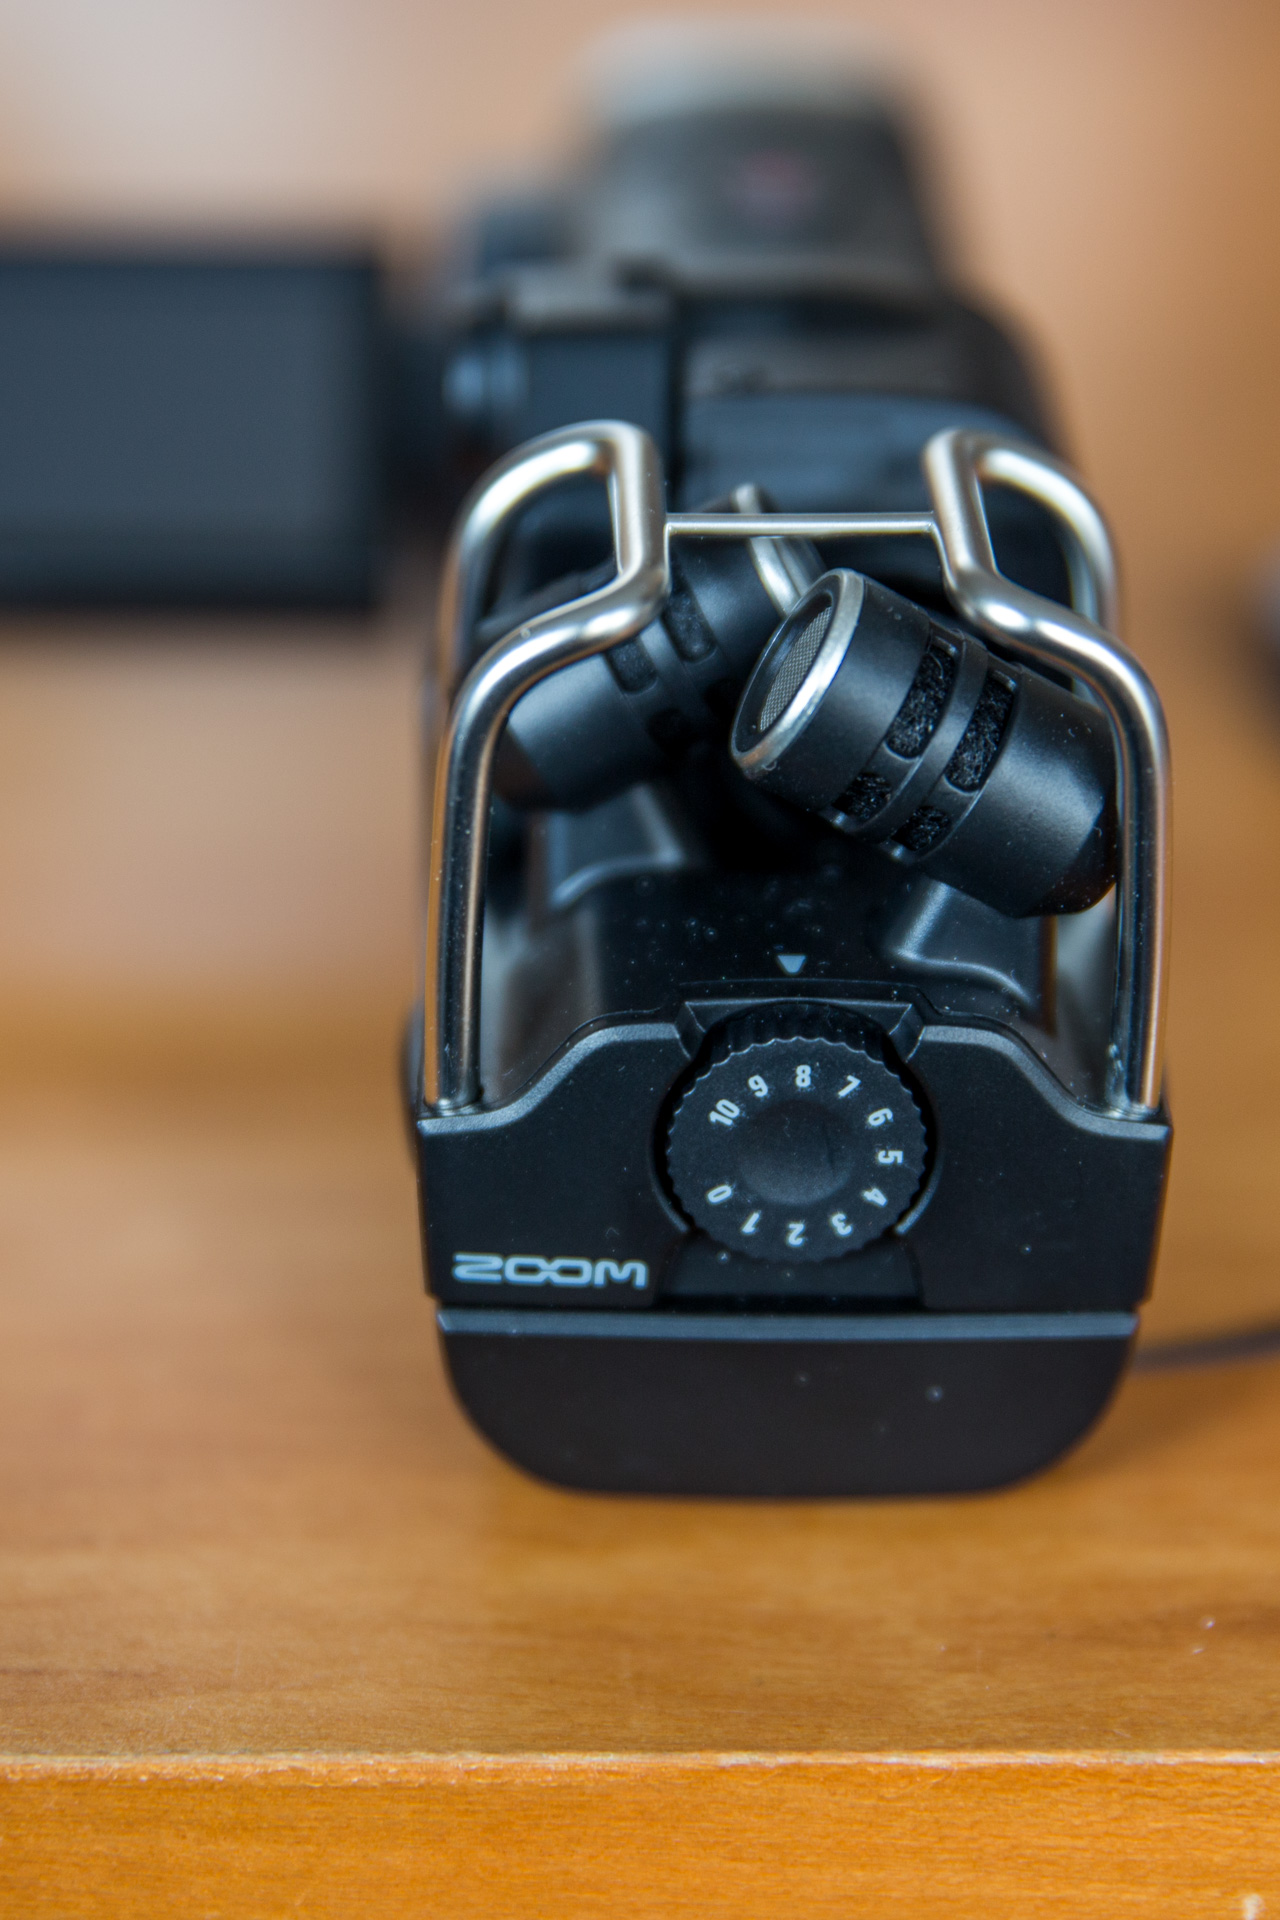 Testing: Zoom Q8 Podcasting Camera - Tested